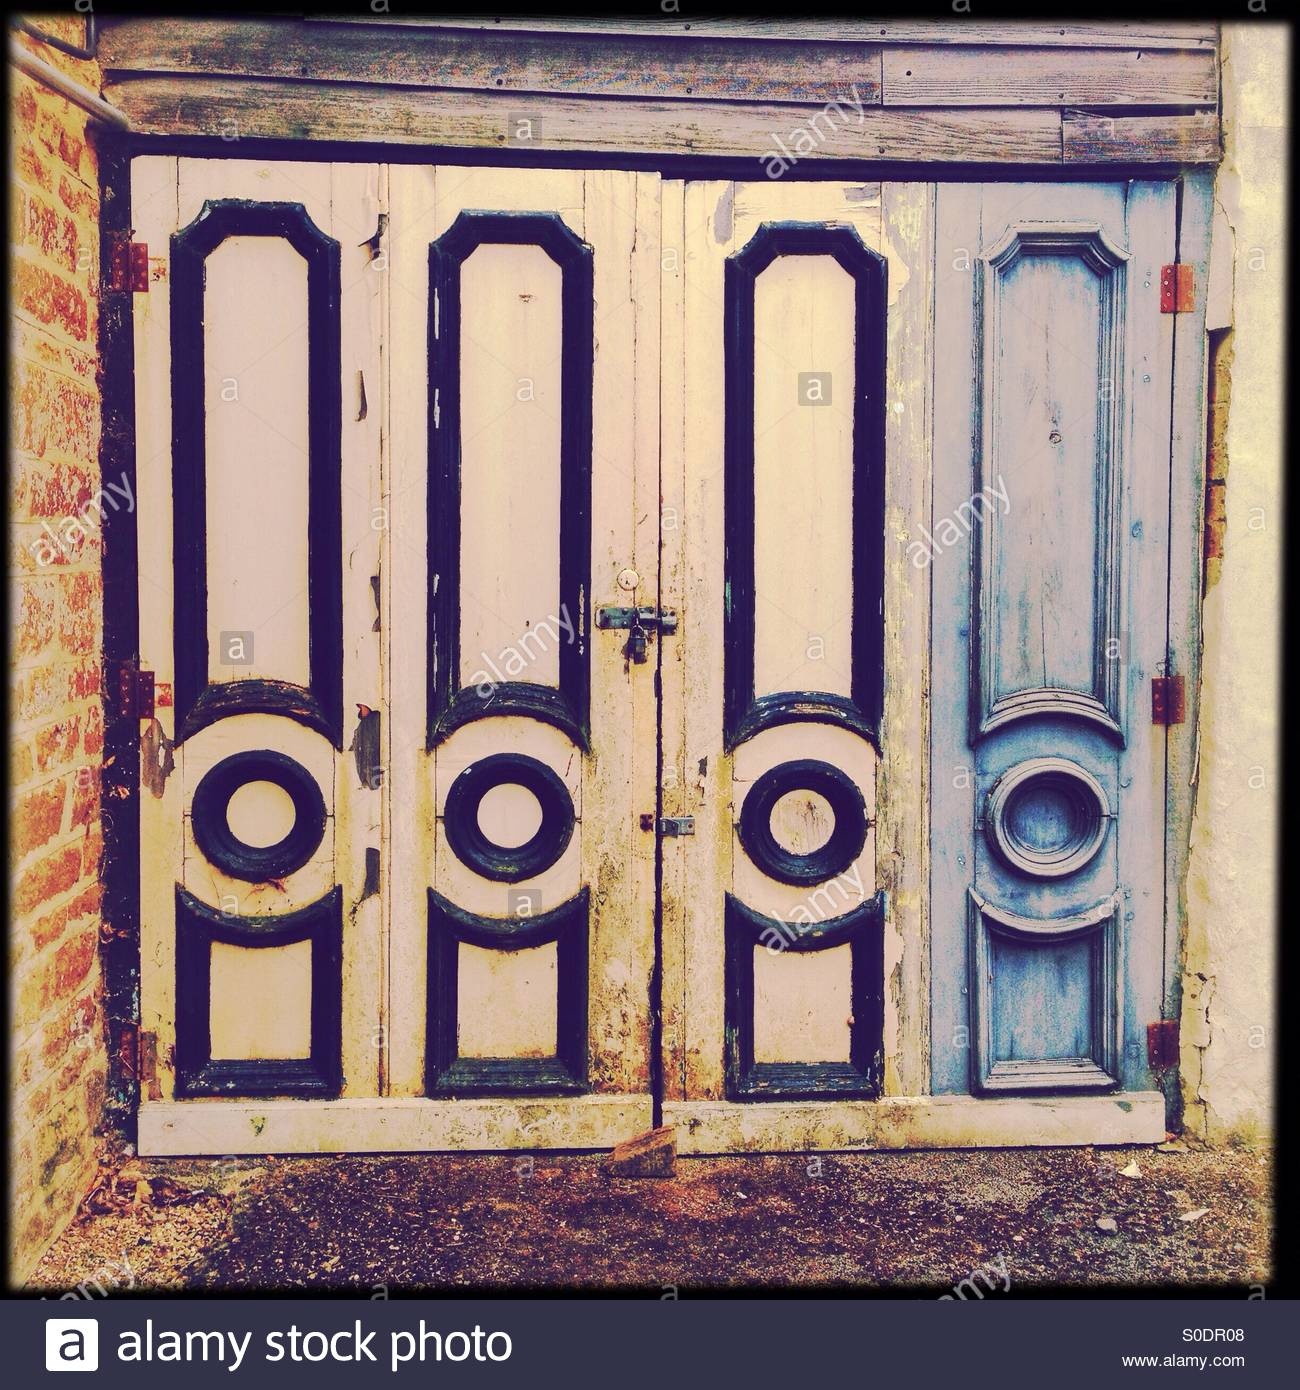 Dilapidated garage doors sporting an unusual design - Stock Image